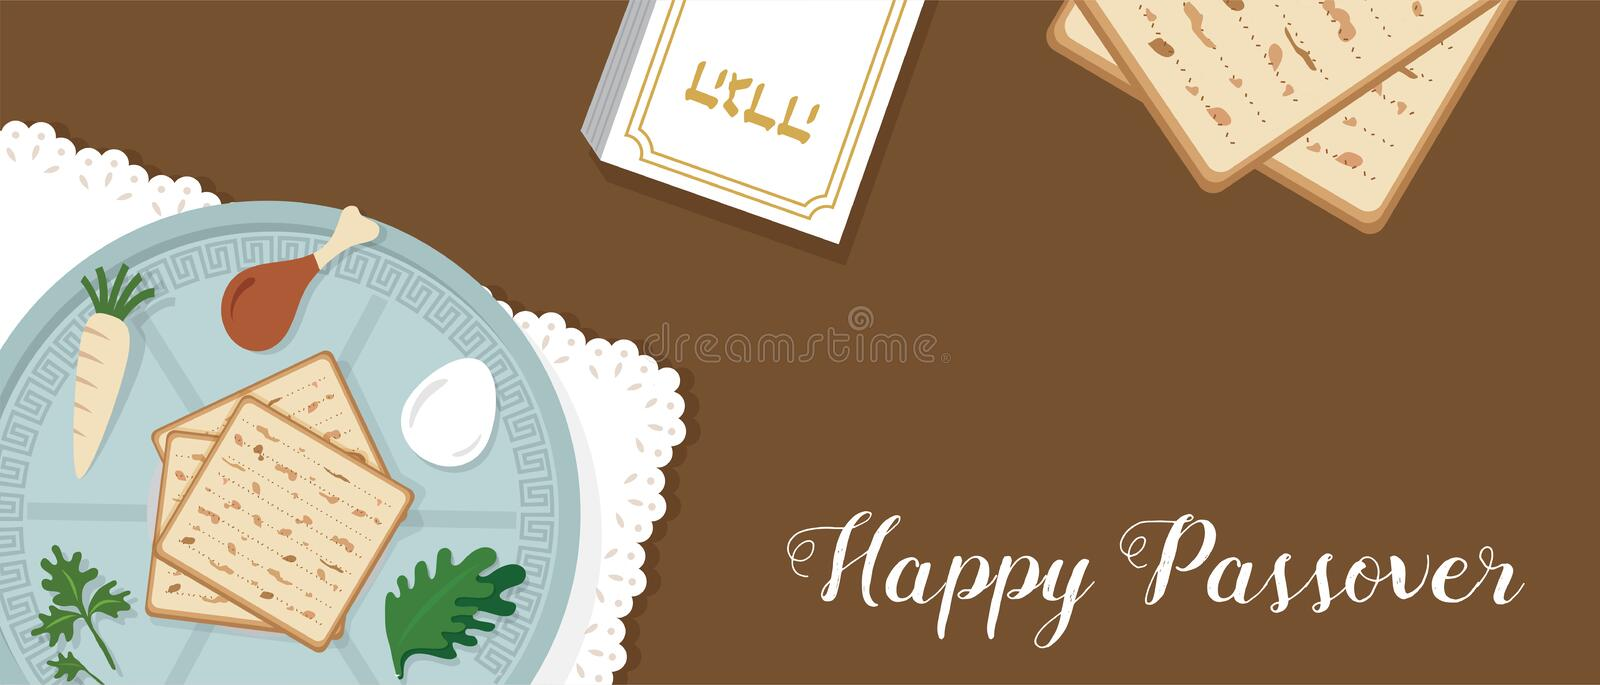 Traditional passover table for Passover dinner with passover plate. vector illustration template banner design stock illustration